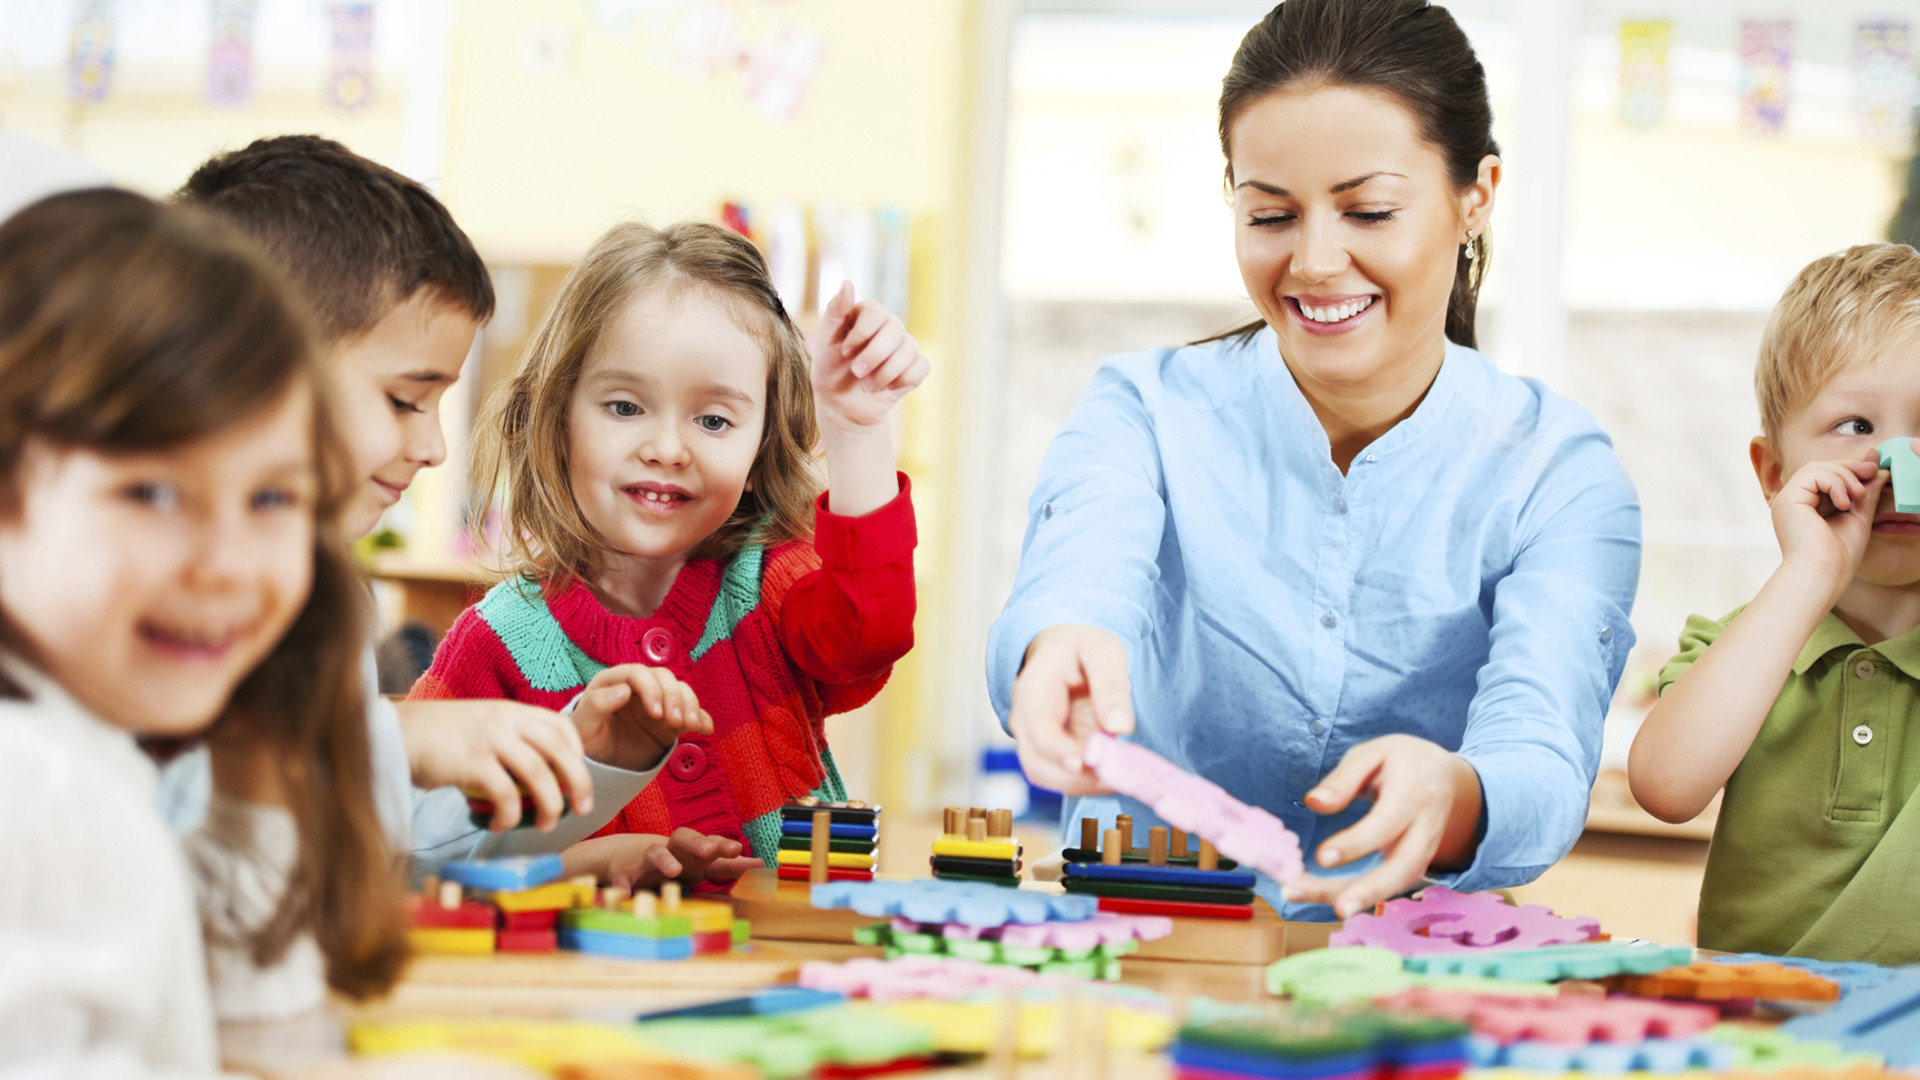 Children at daycare | Sheknows.com